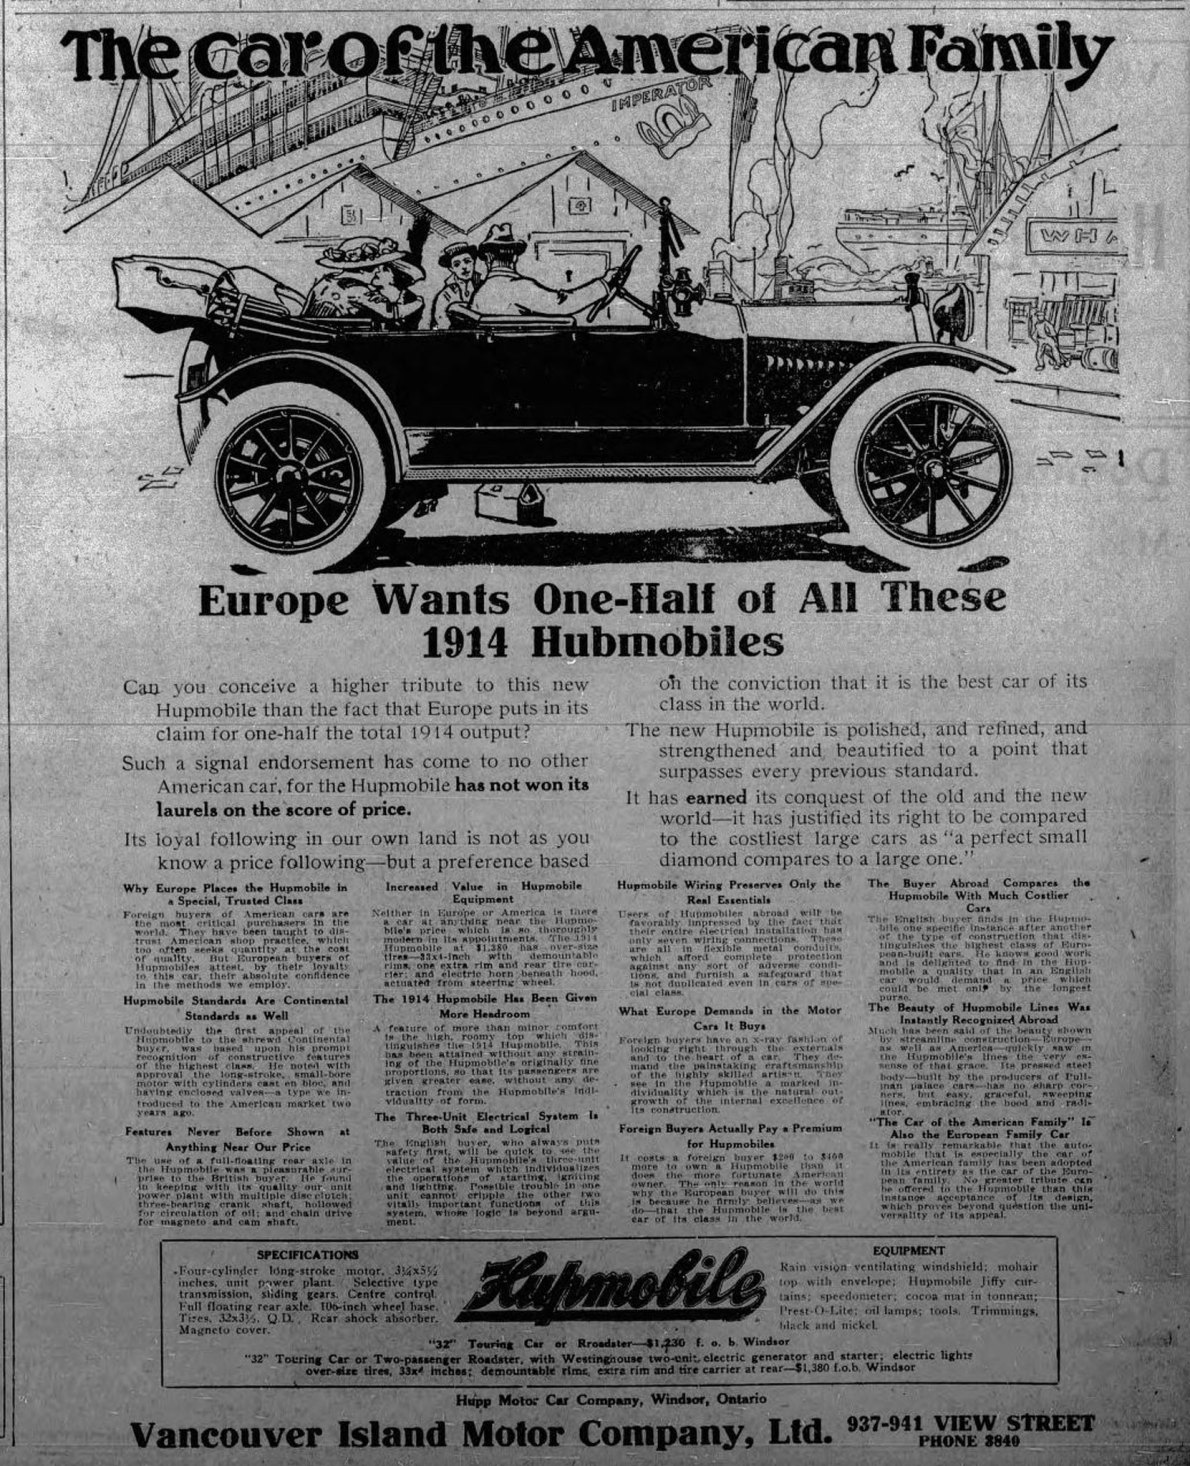 1913 advertisement for Hupmobile, sold by Vancouver Island Motor Company Ltd., 937 View Street (Victoria Online Sightseeing Tours collection)